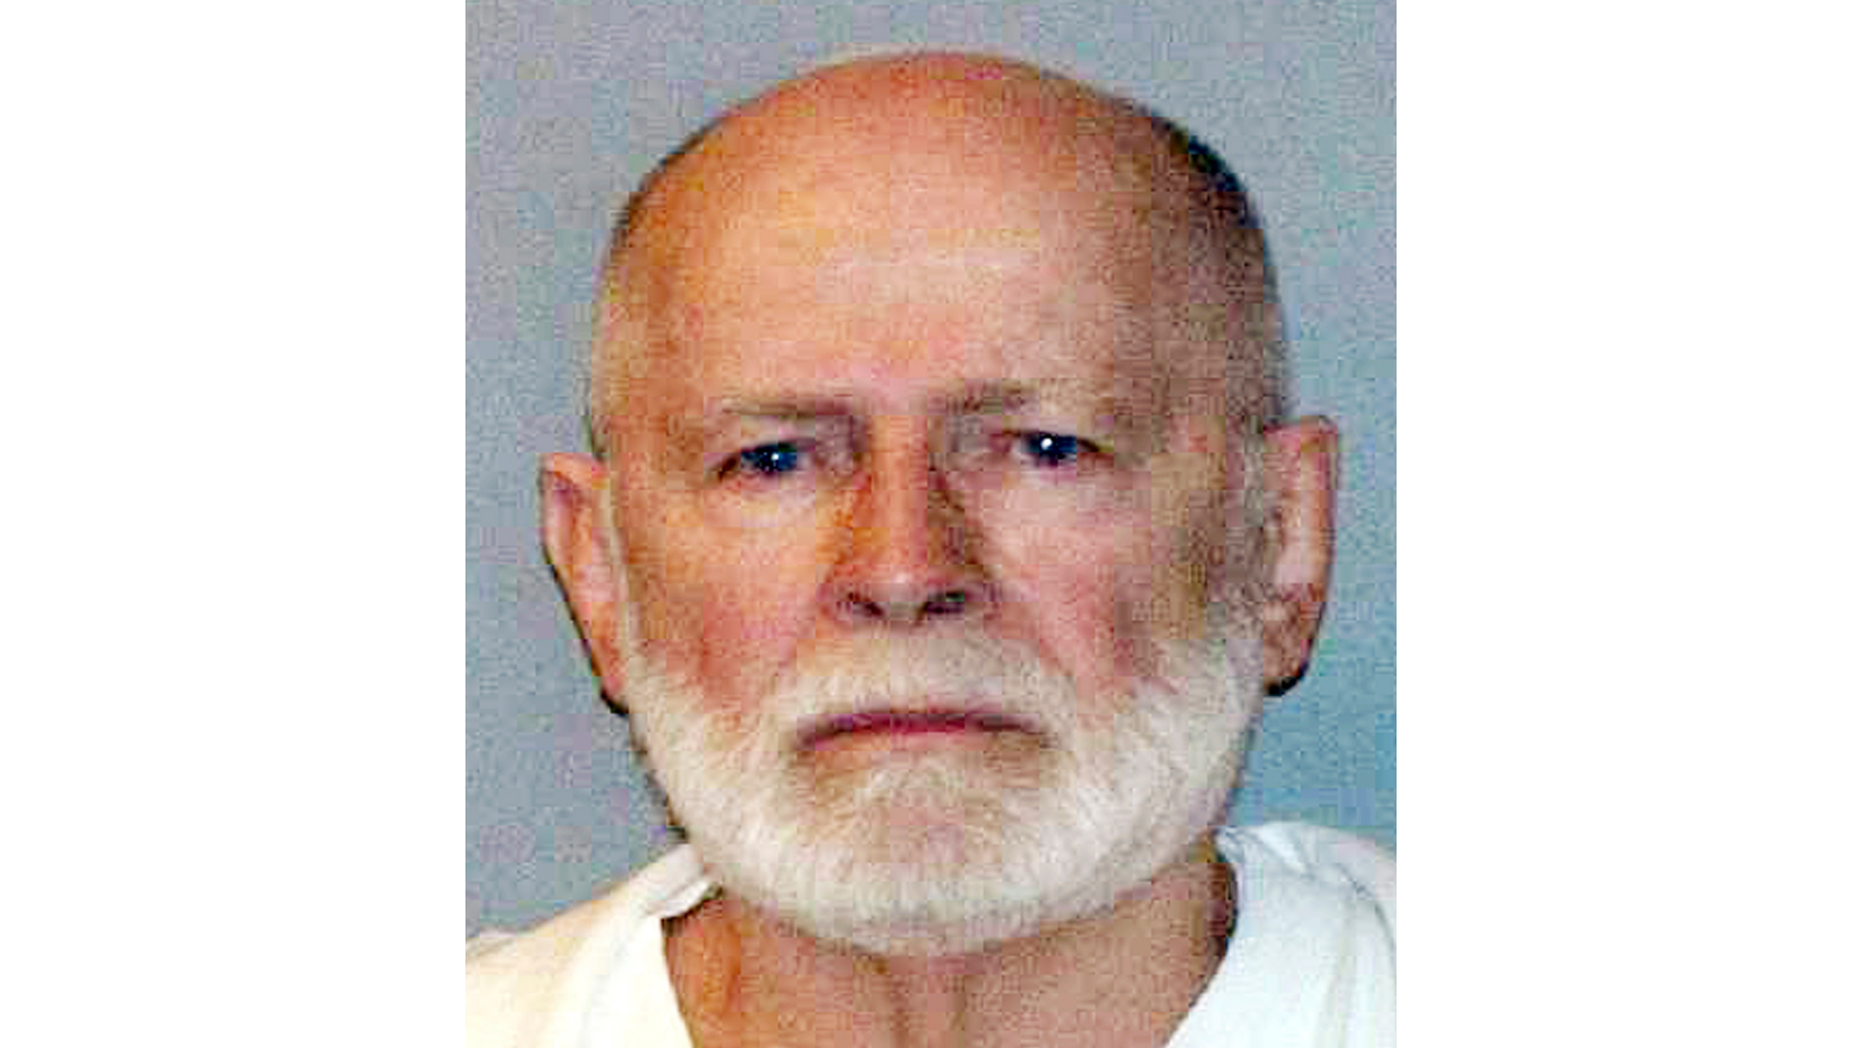 "FILE - This June 23, 2011, file booking photo provided by the U.S. Marshals Service shows James ""Whitey"" Bulger. Officials with the Federal Bureau of Prisons said Bulger died Tuesday, Oct. 30, 2018, in a West Virginia prison after being sentenced in 2013 in Boston to spend the rest of his life in prison. The death of notorious Boston mobster James ""Whitey"" Bulger marks the third inmate to be killed at a West Virginia federal prison in the last six months. (U.S. Marshals Service via AP, File)"